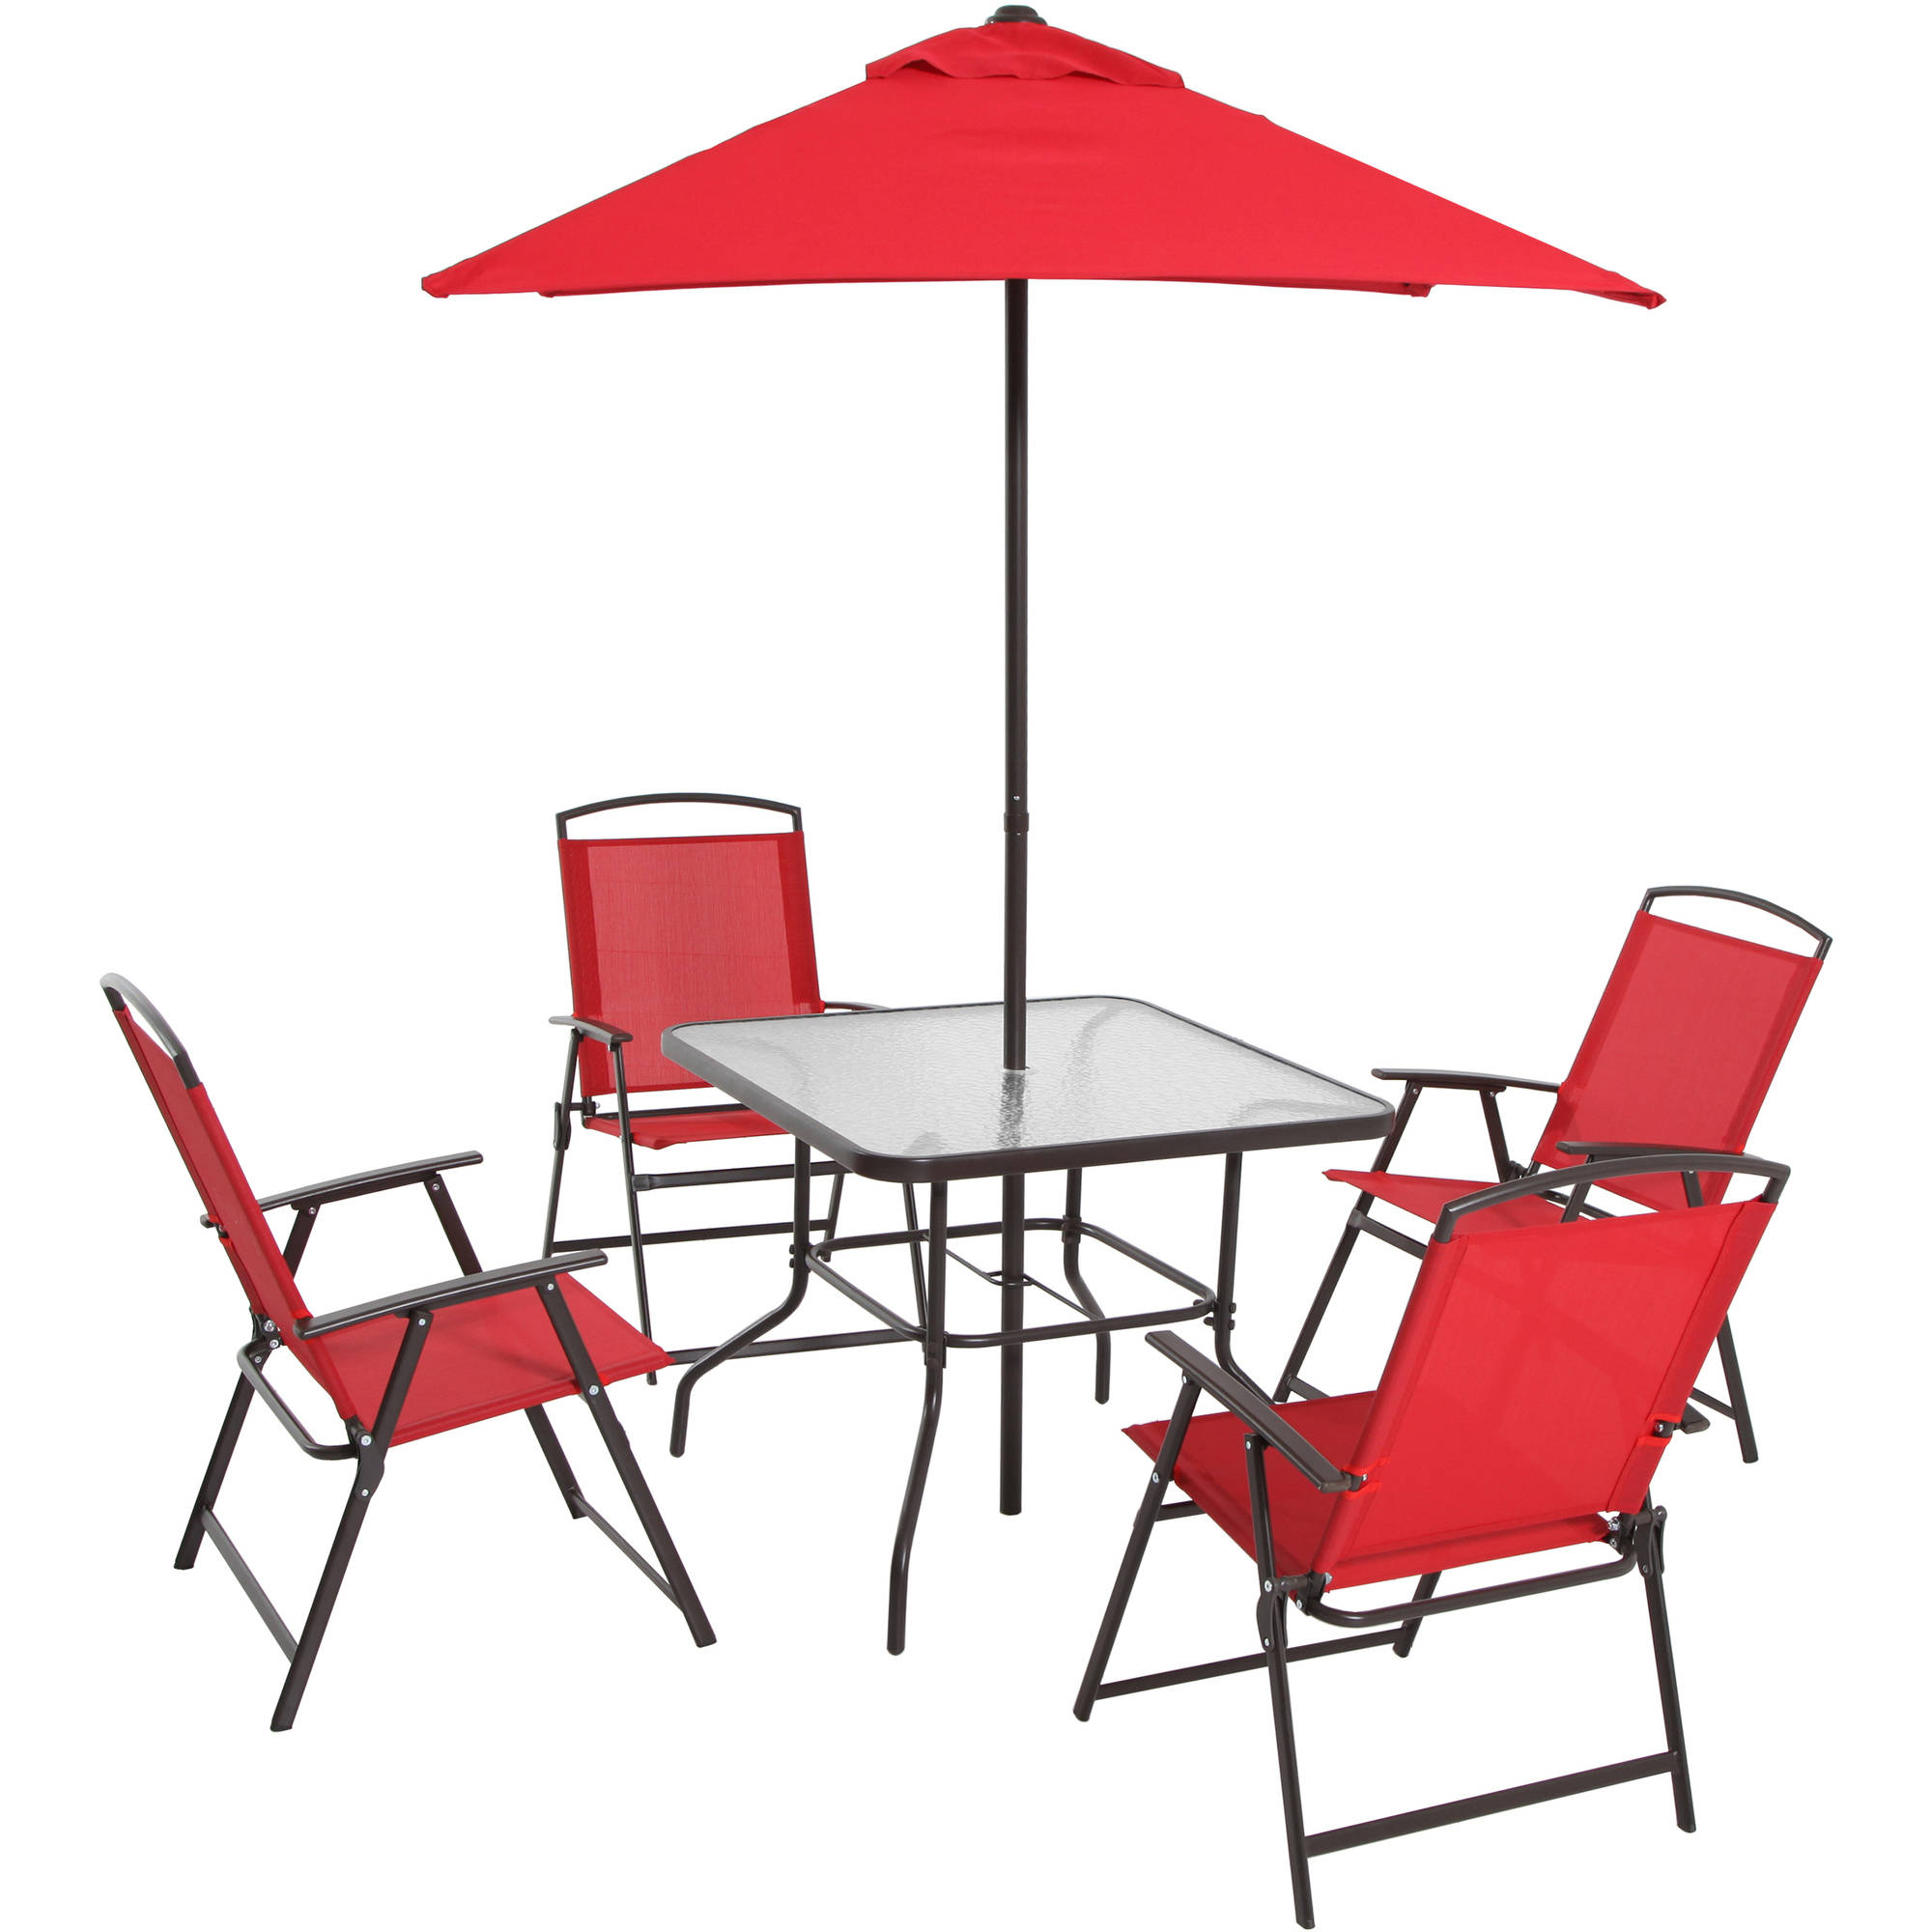 Patio Dining Set Folding Chairs Outdoor Furniture Metal Frame Umbrella Red  sc 1 st  eBay & Patio Dining Set Folding Chairs Outdoor Furniture Metal Frame ...